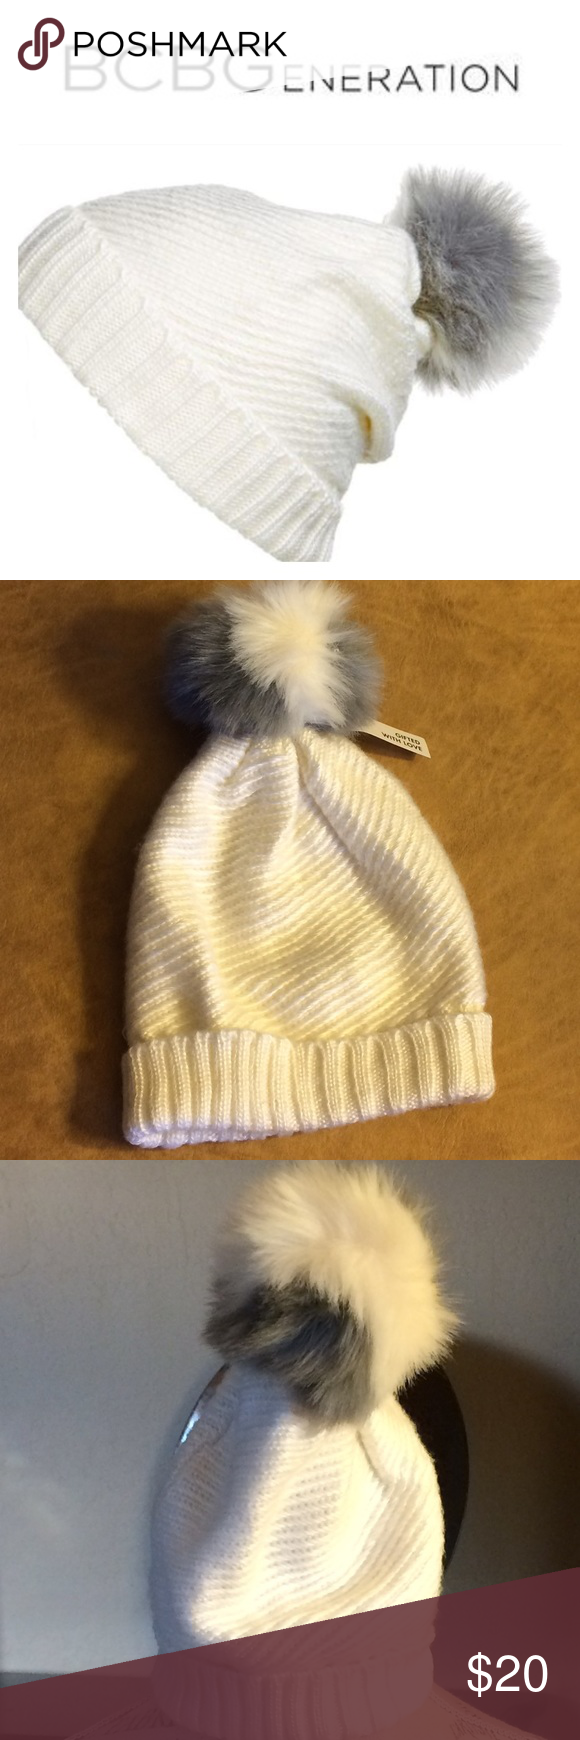 BCBGeneration Pom Pom Beanie optic white, knit pom pom beanie. Two color fluffy faux fur pom pom and Wide turned up cuff. NWT 🚫trades please BCBGeneration Accessories Hats